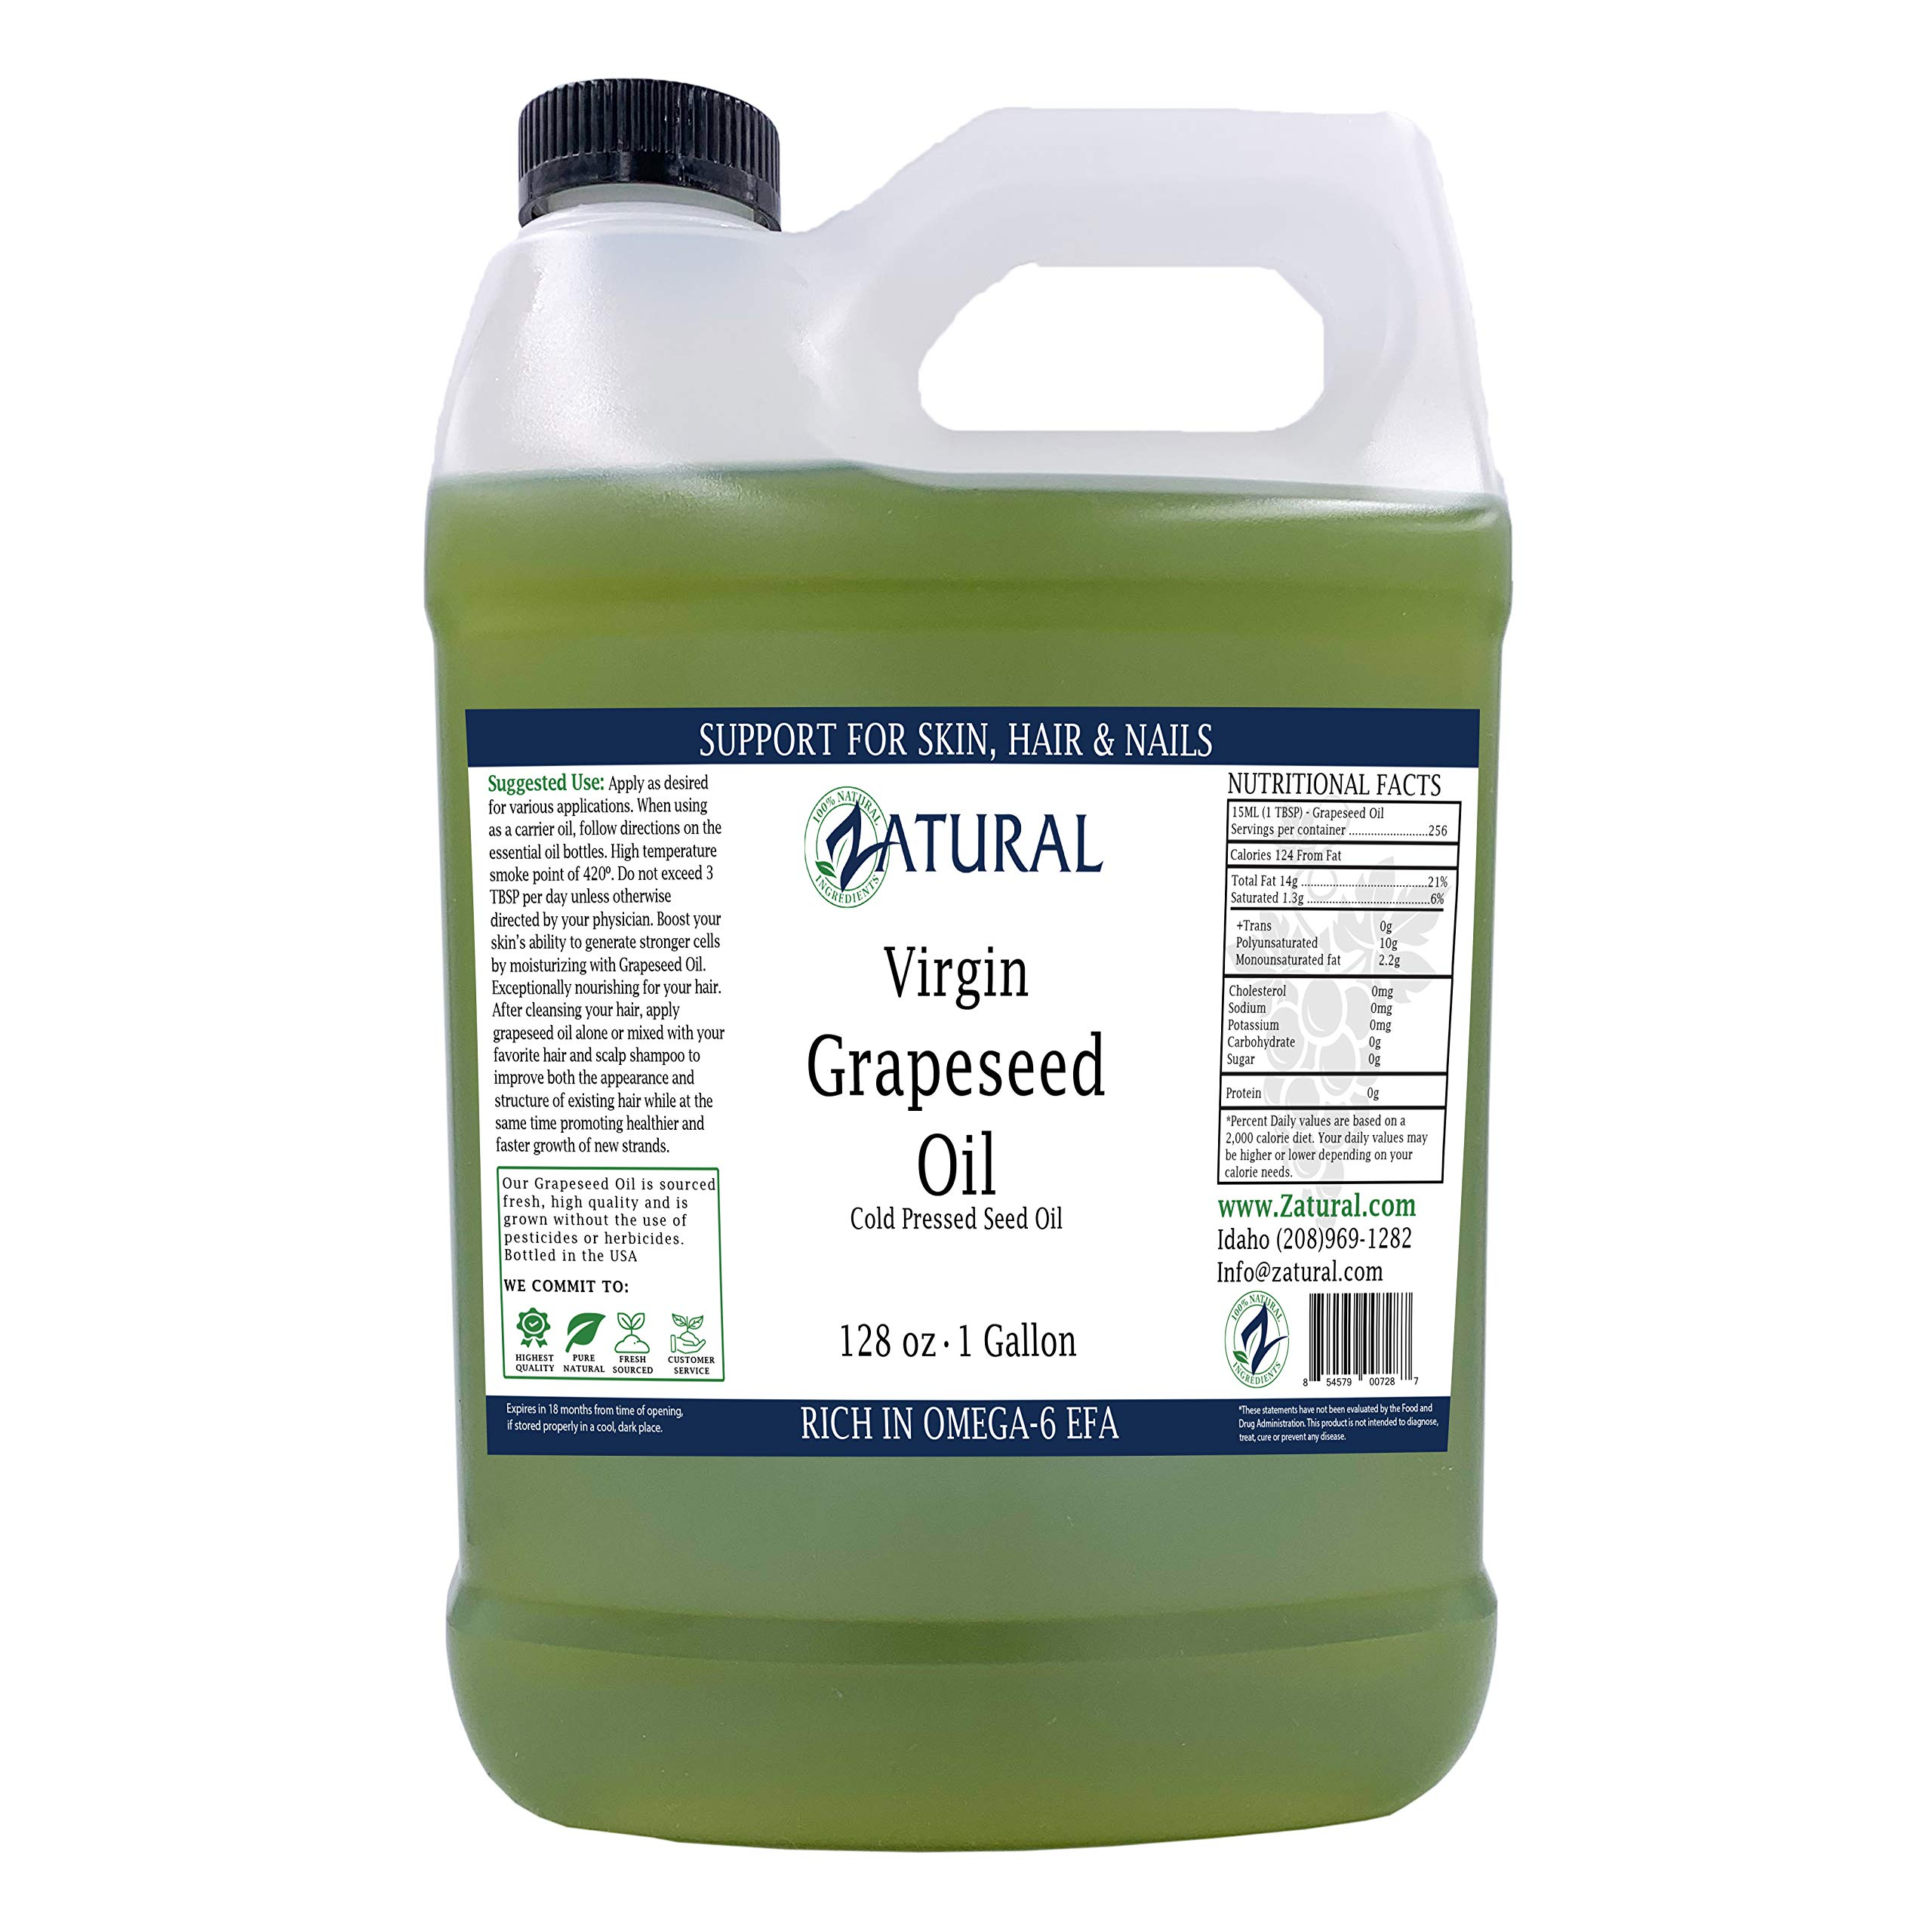 GrapeSeed Oil-Cold Pressed, Virgin, Undiluted, 100% Pure Grape Seed Oil (128 Ounce (1 Gallon)) by Zatural